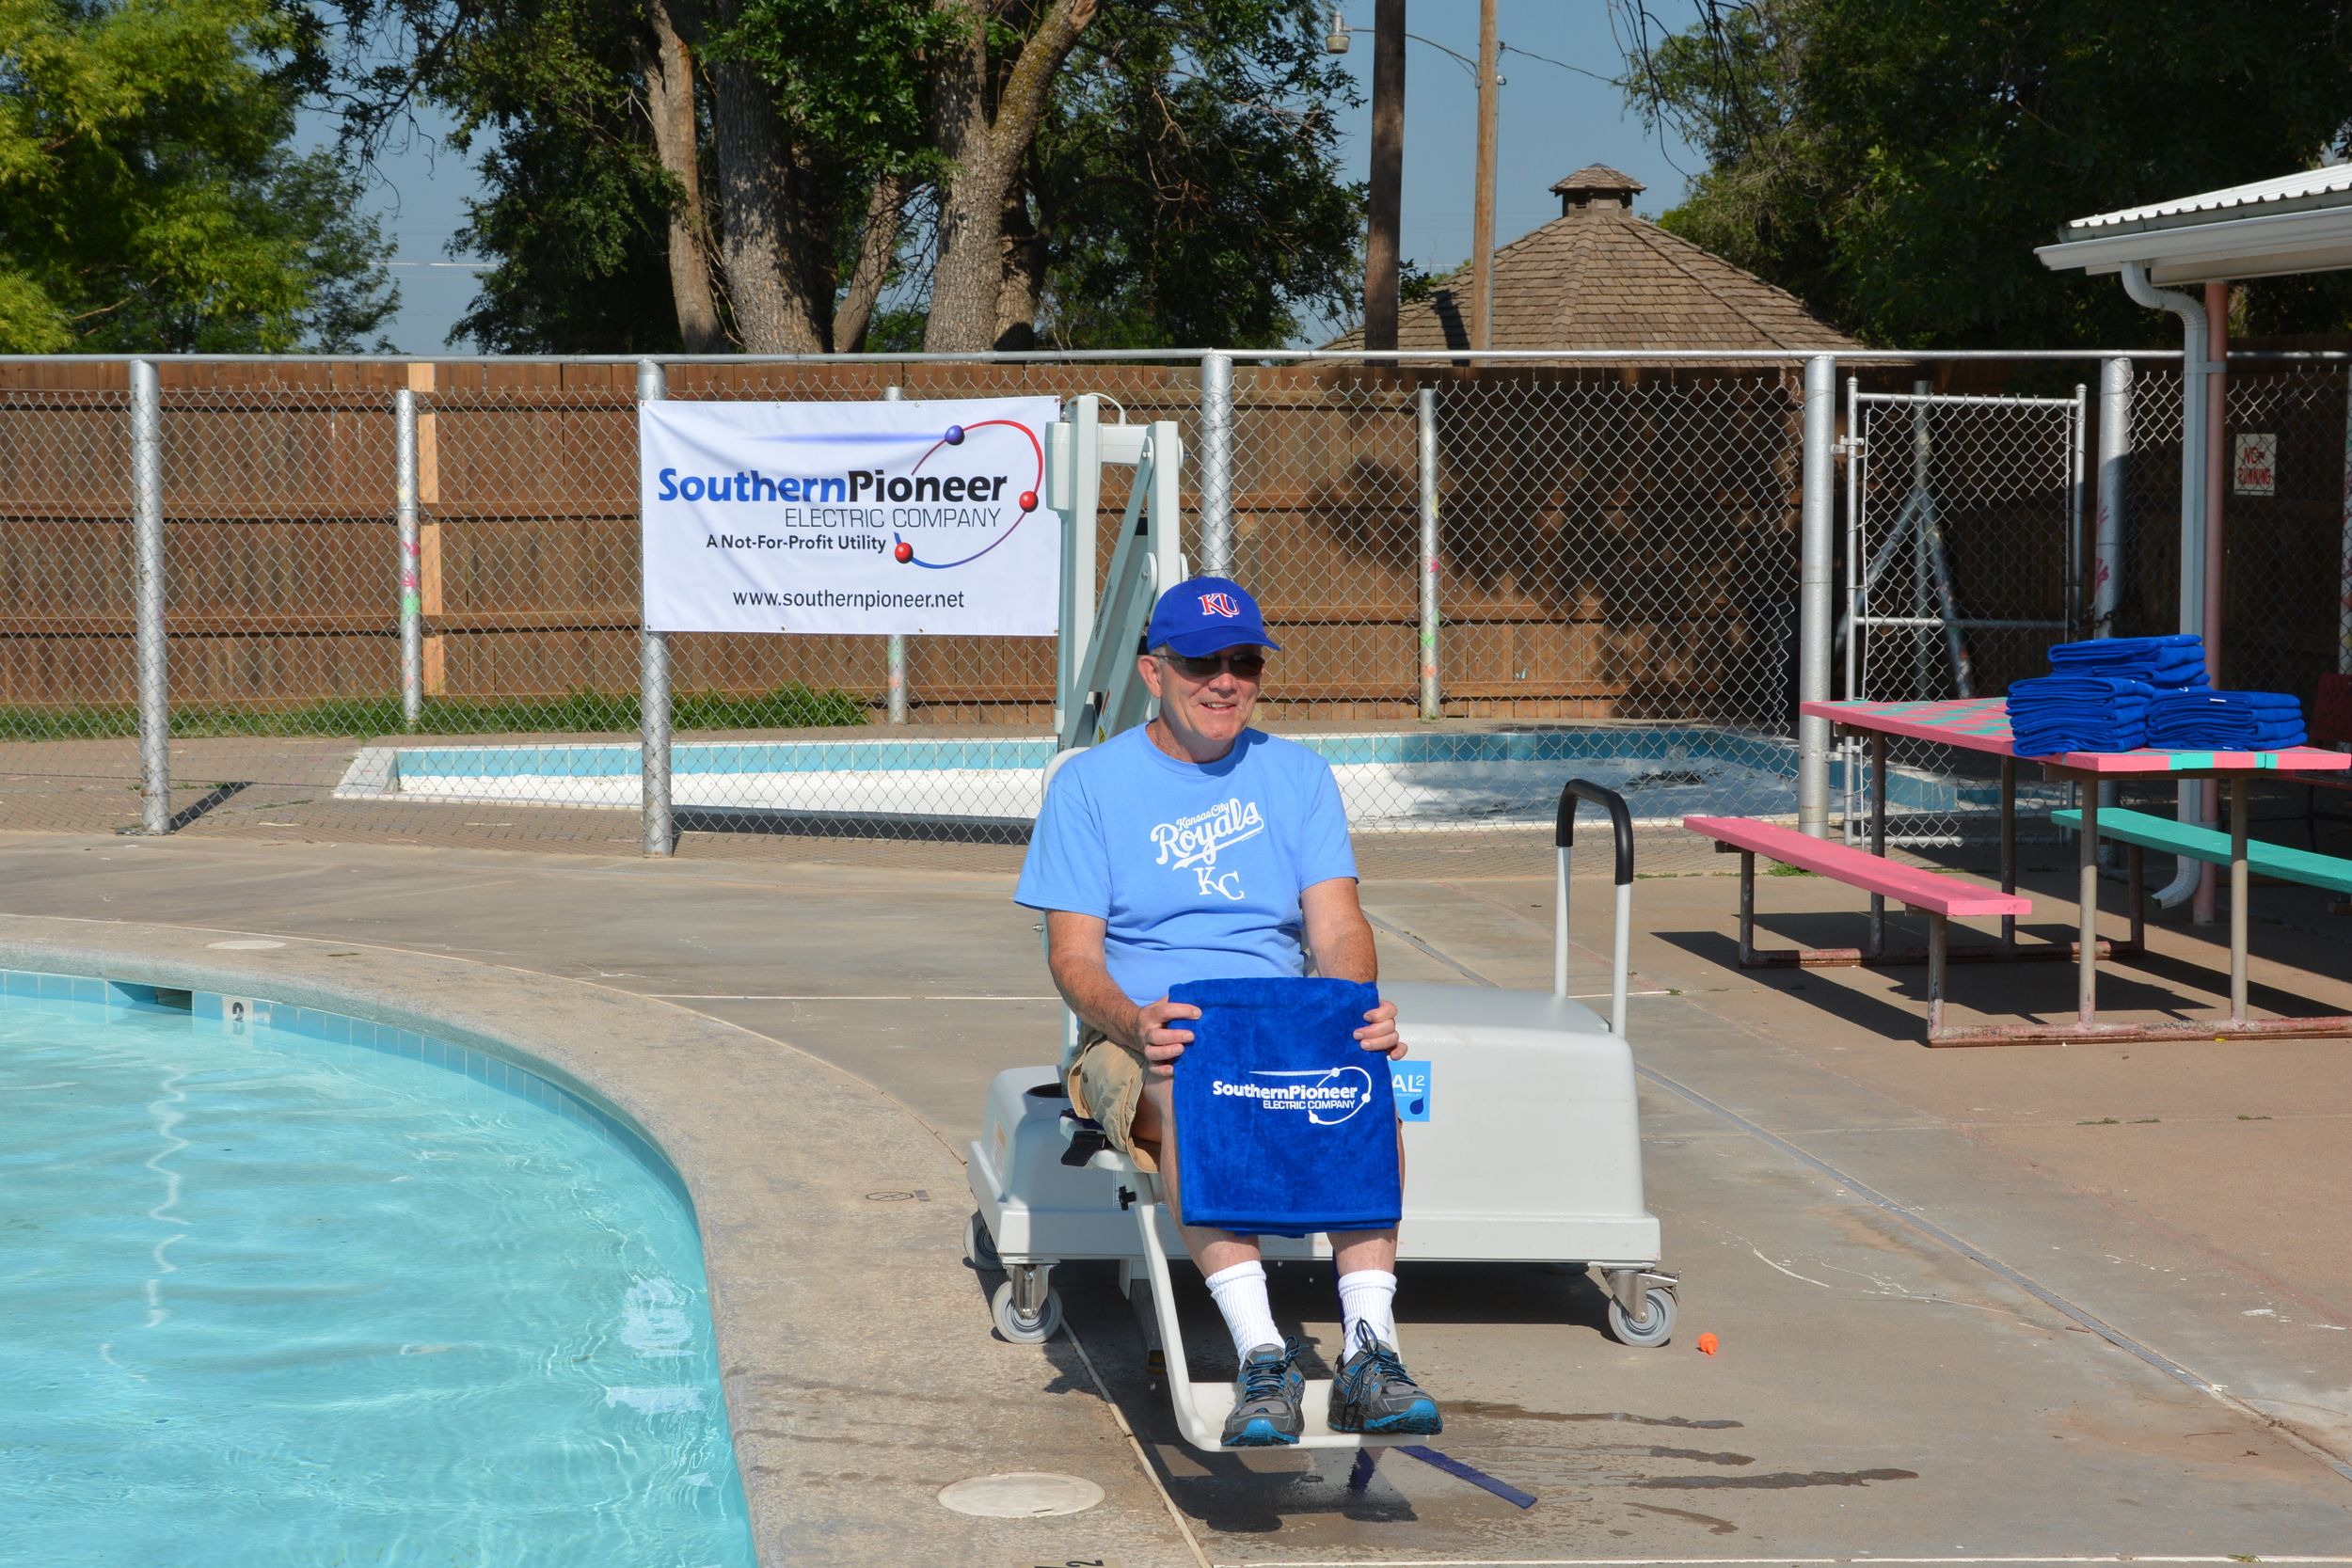 Mayor of Sublette, Jery Bailey- poses for a picture in the new mobile chair lift purchased with H.U.G.S. funds for the Sublette City pool.